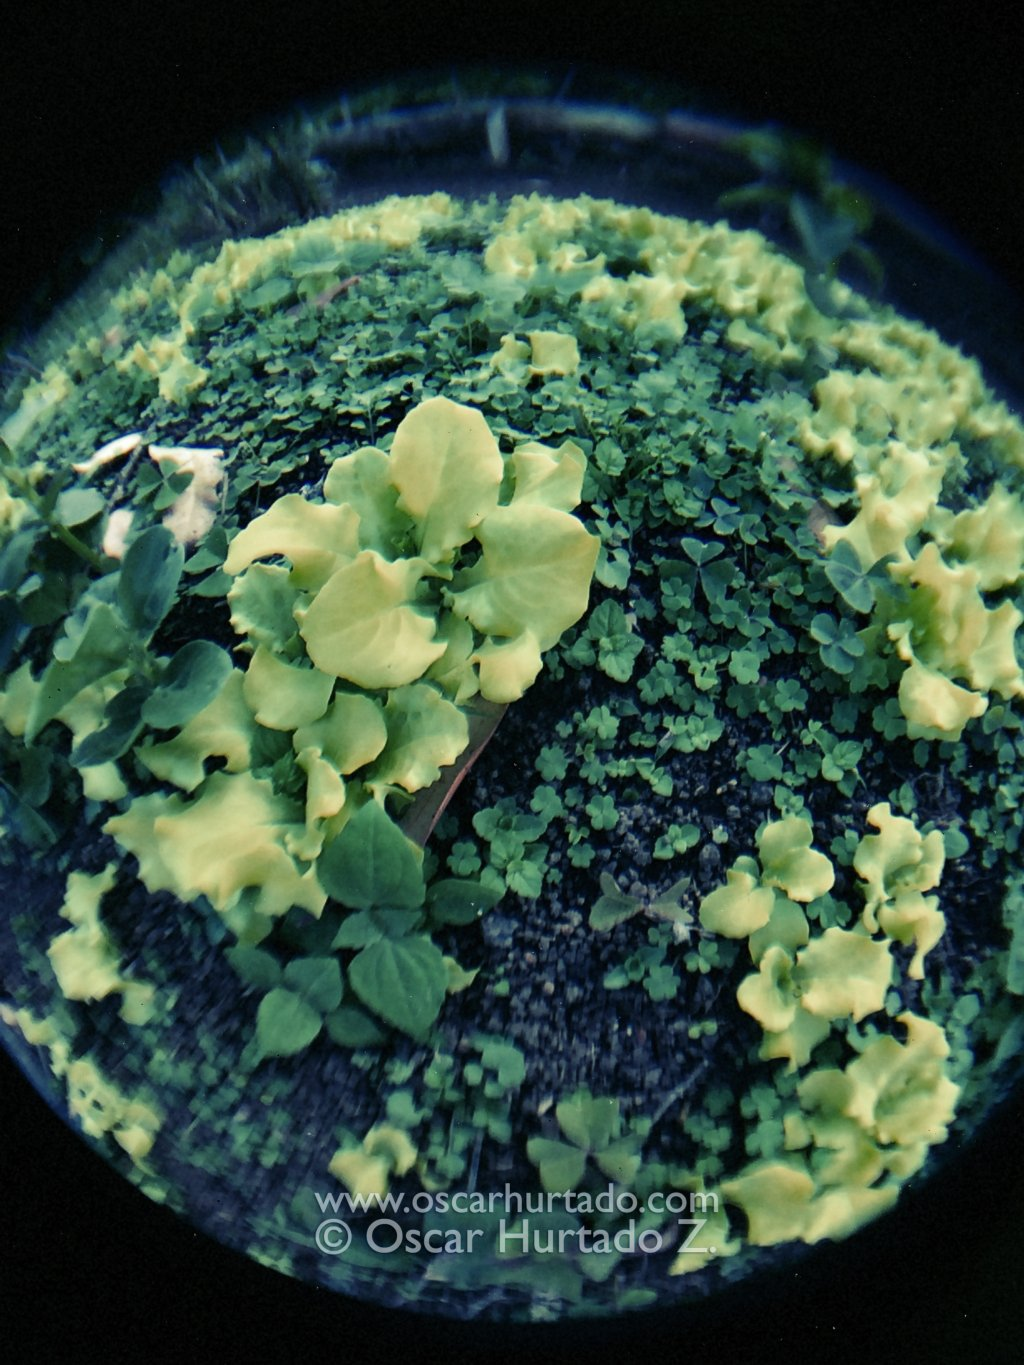 Fish-eye view of the lettuce growing in the garden